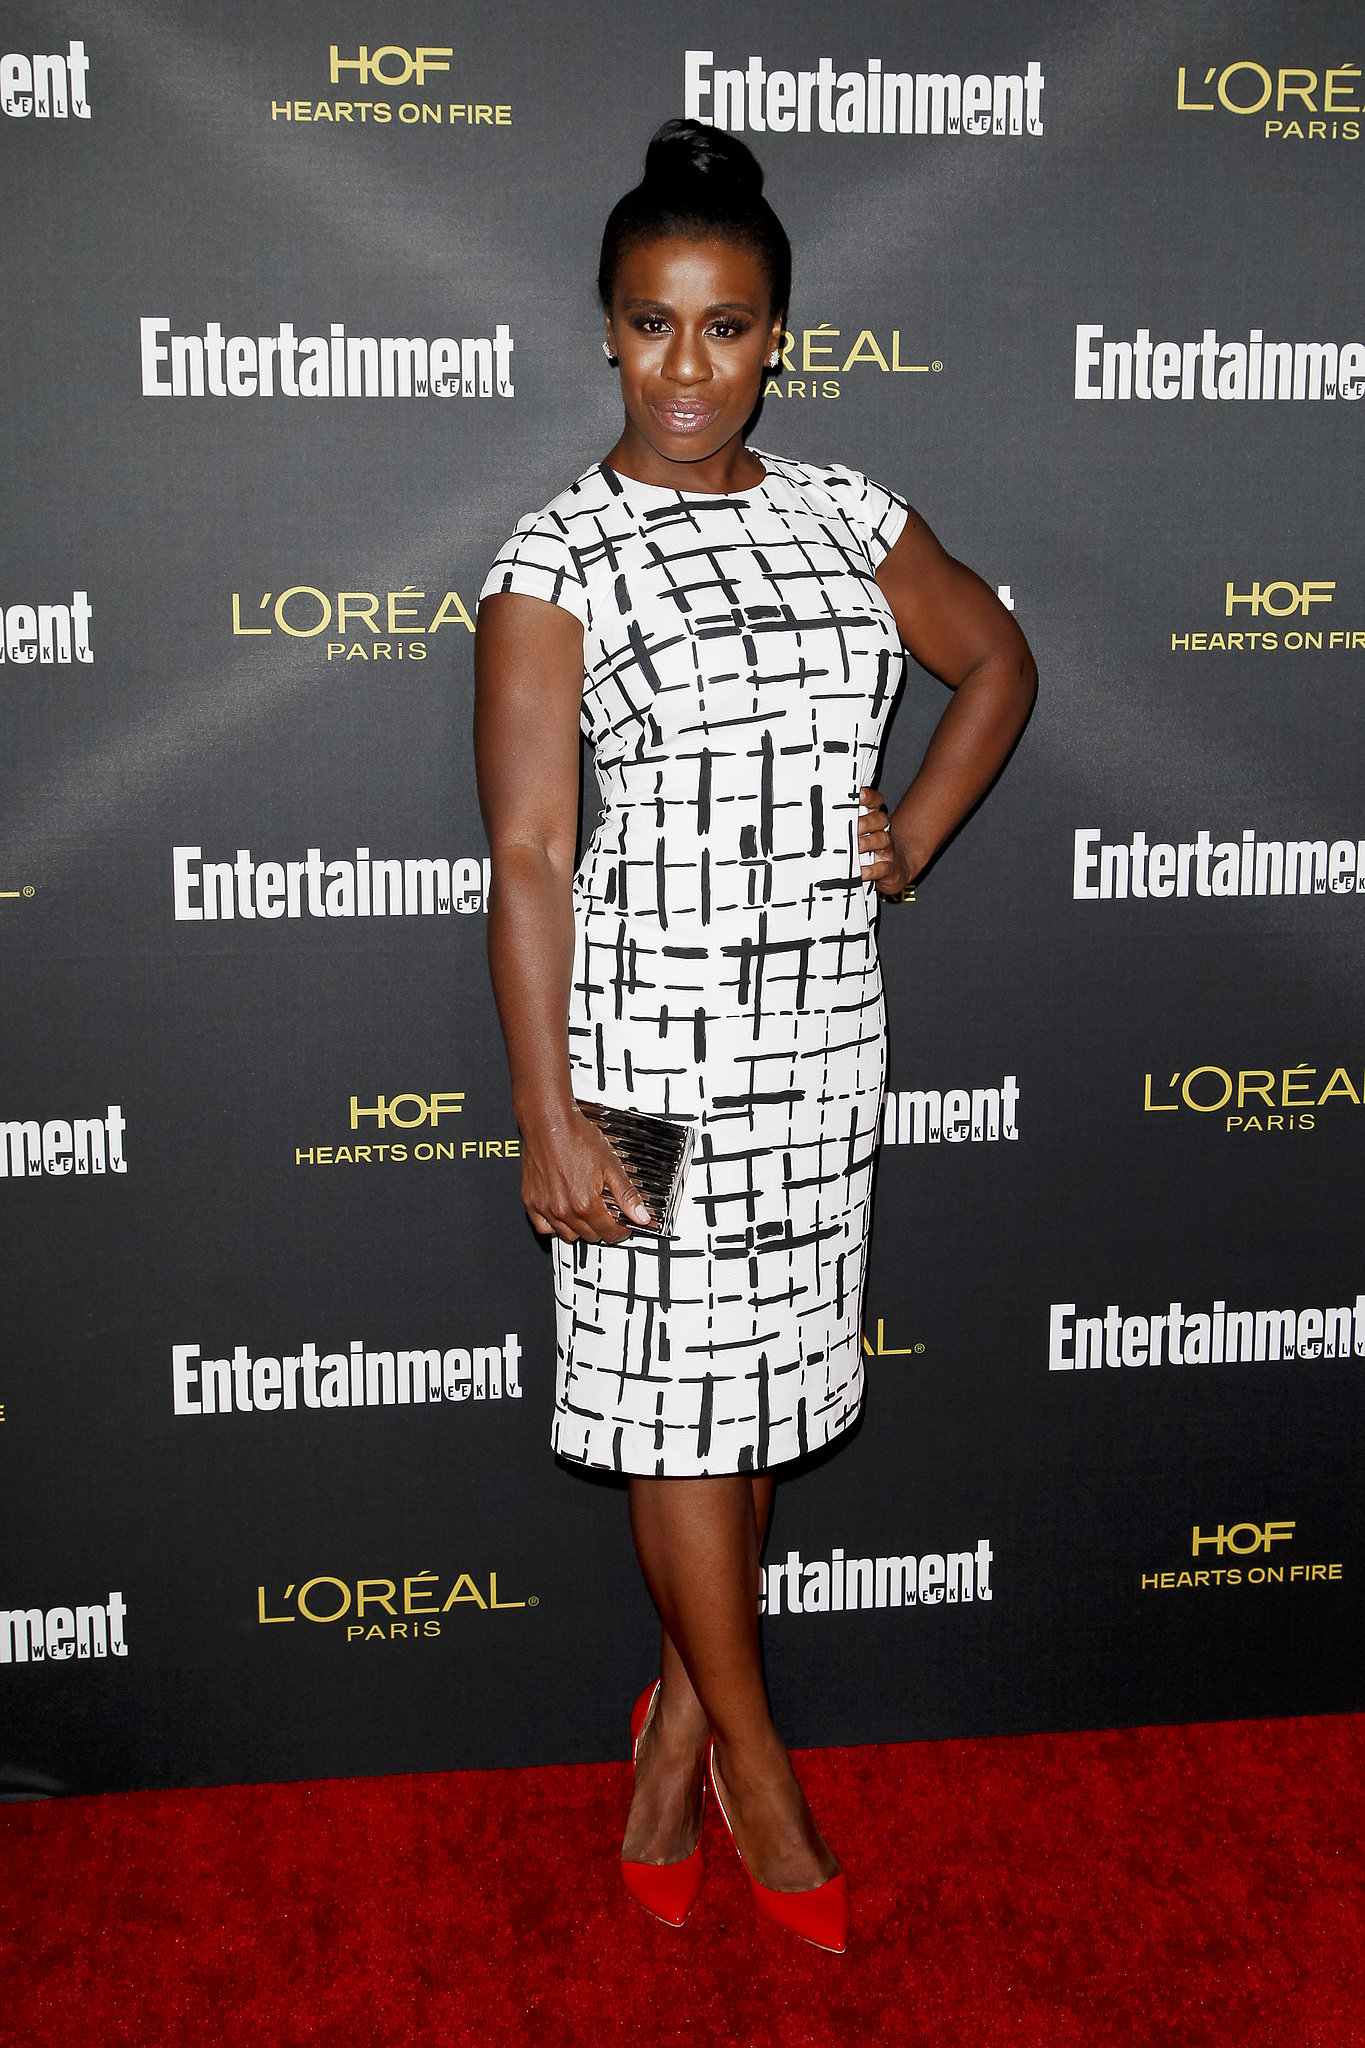 Uzo Aduba celebrated her Emmy win at Entertainment Weekly's party.